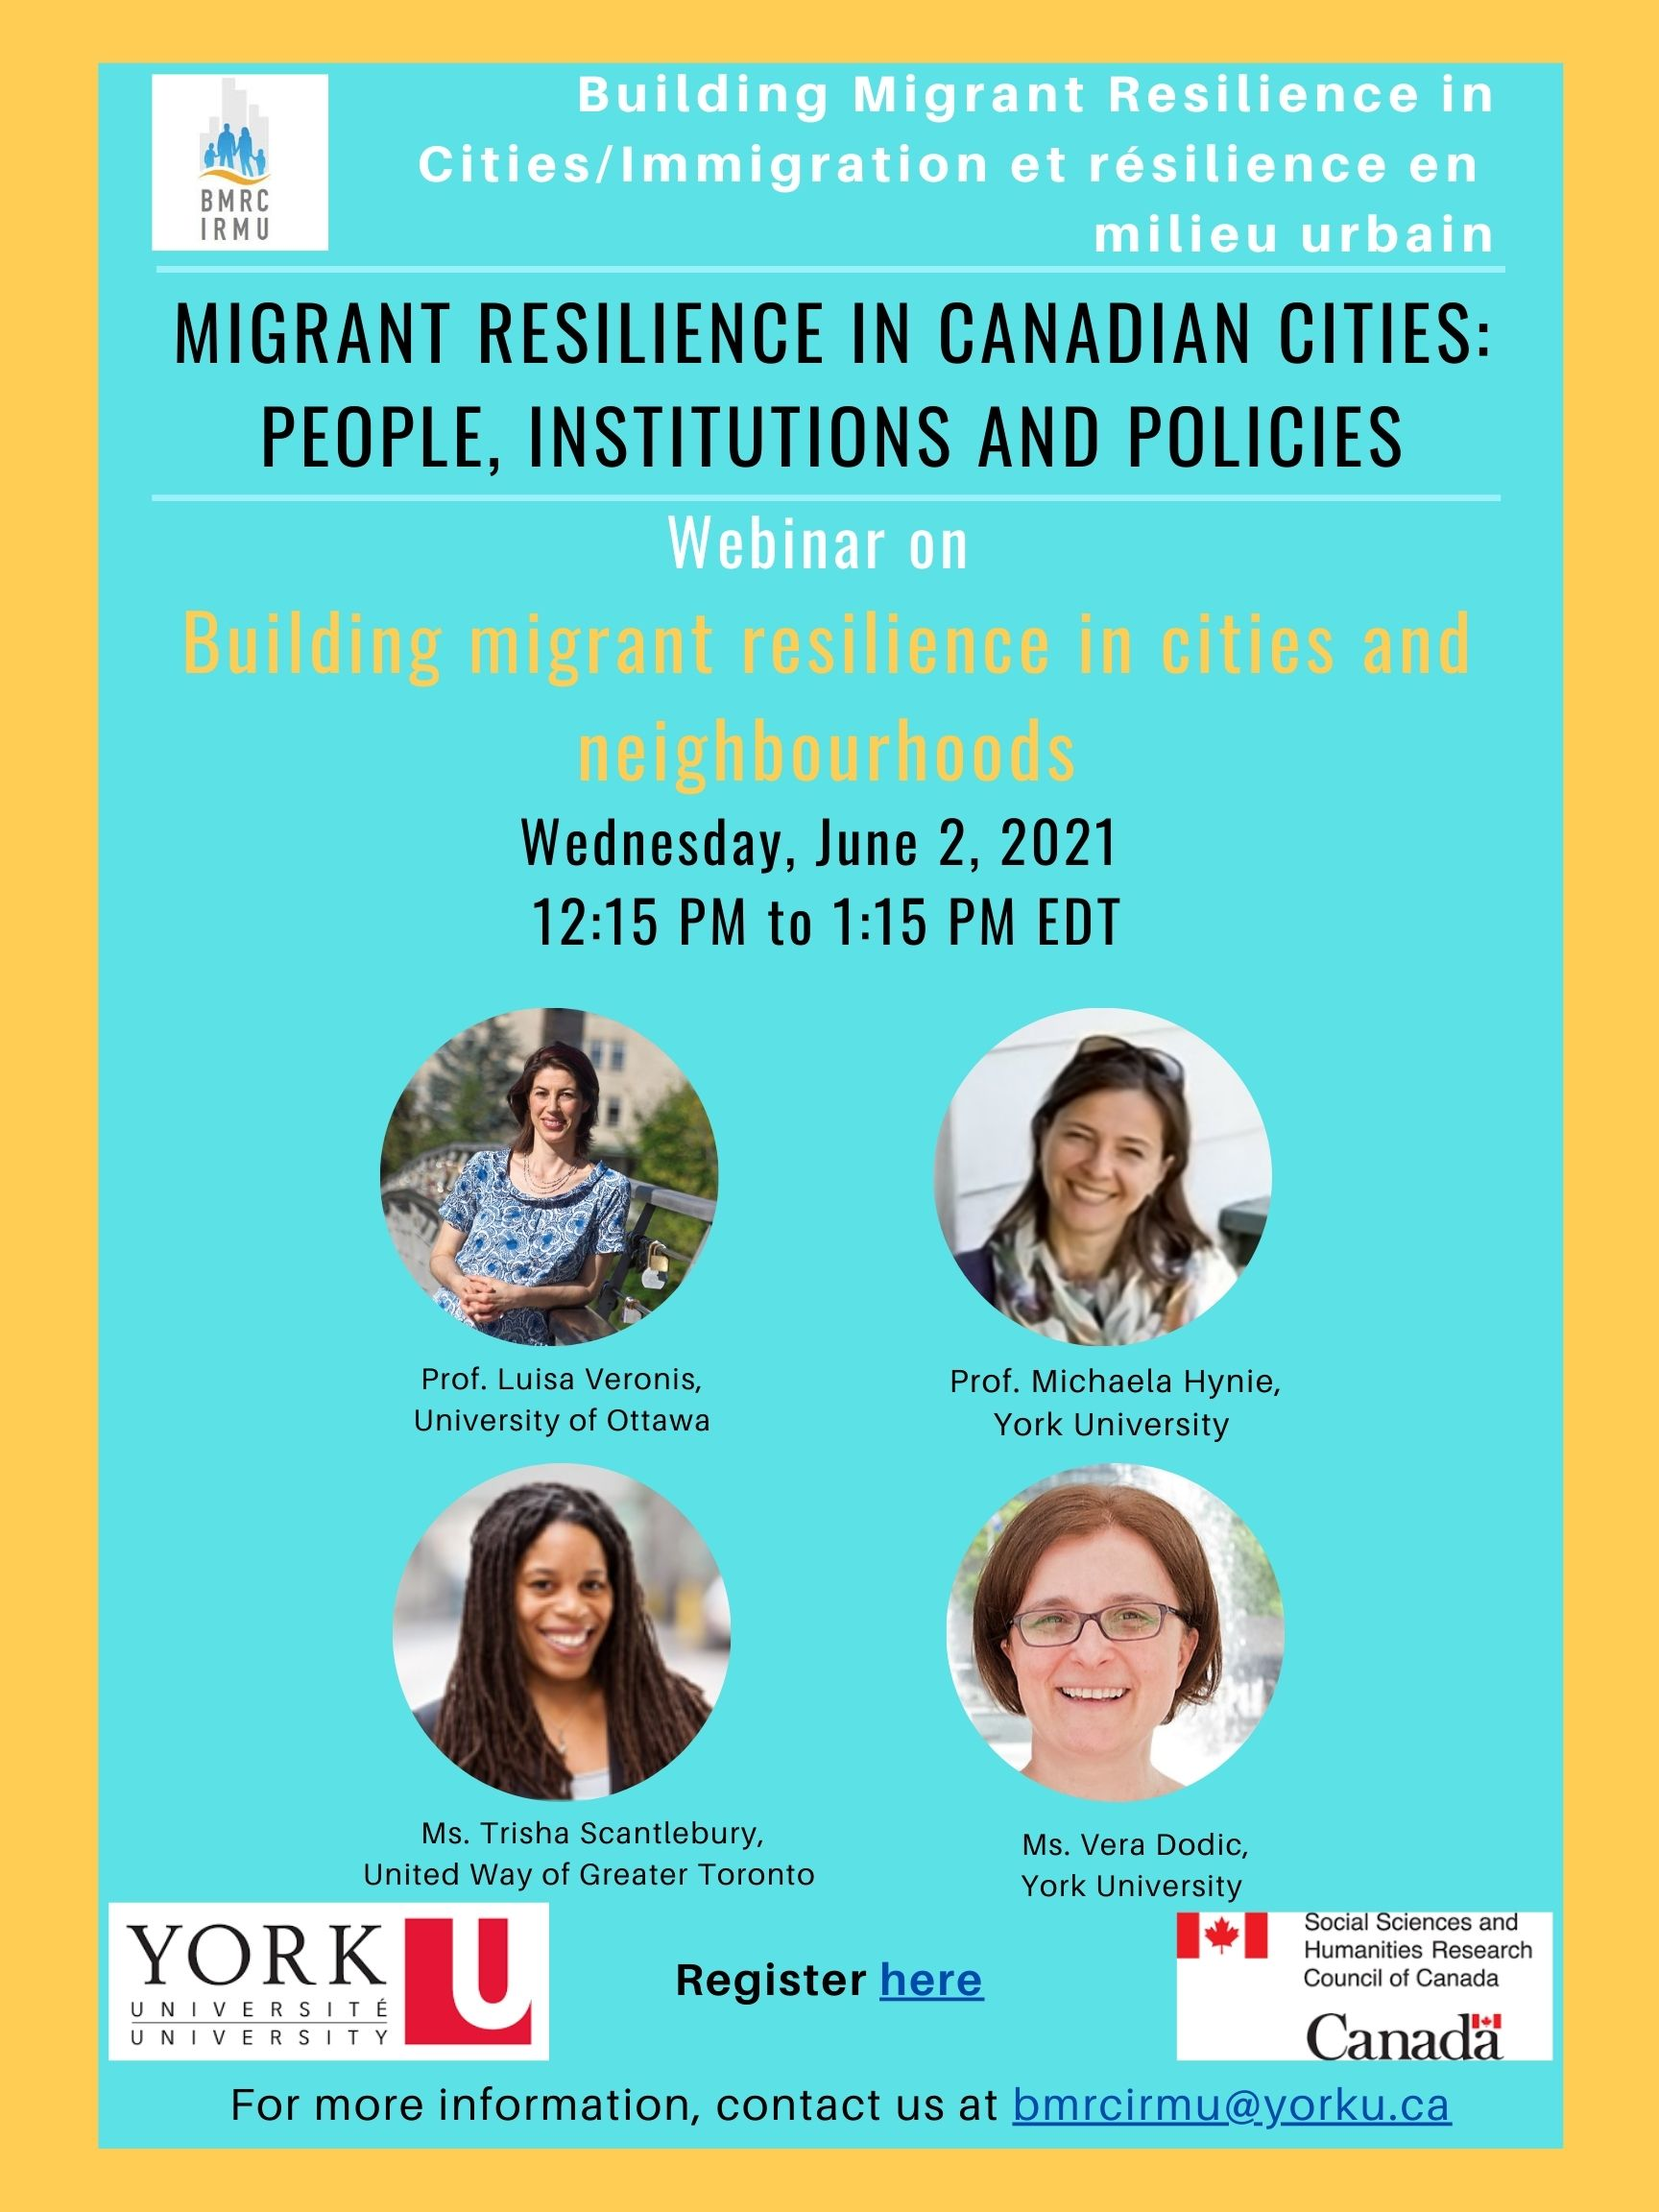 Migrant Resilience in Canadian Cities: people, institutions, and policies